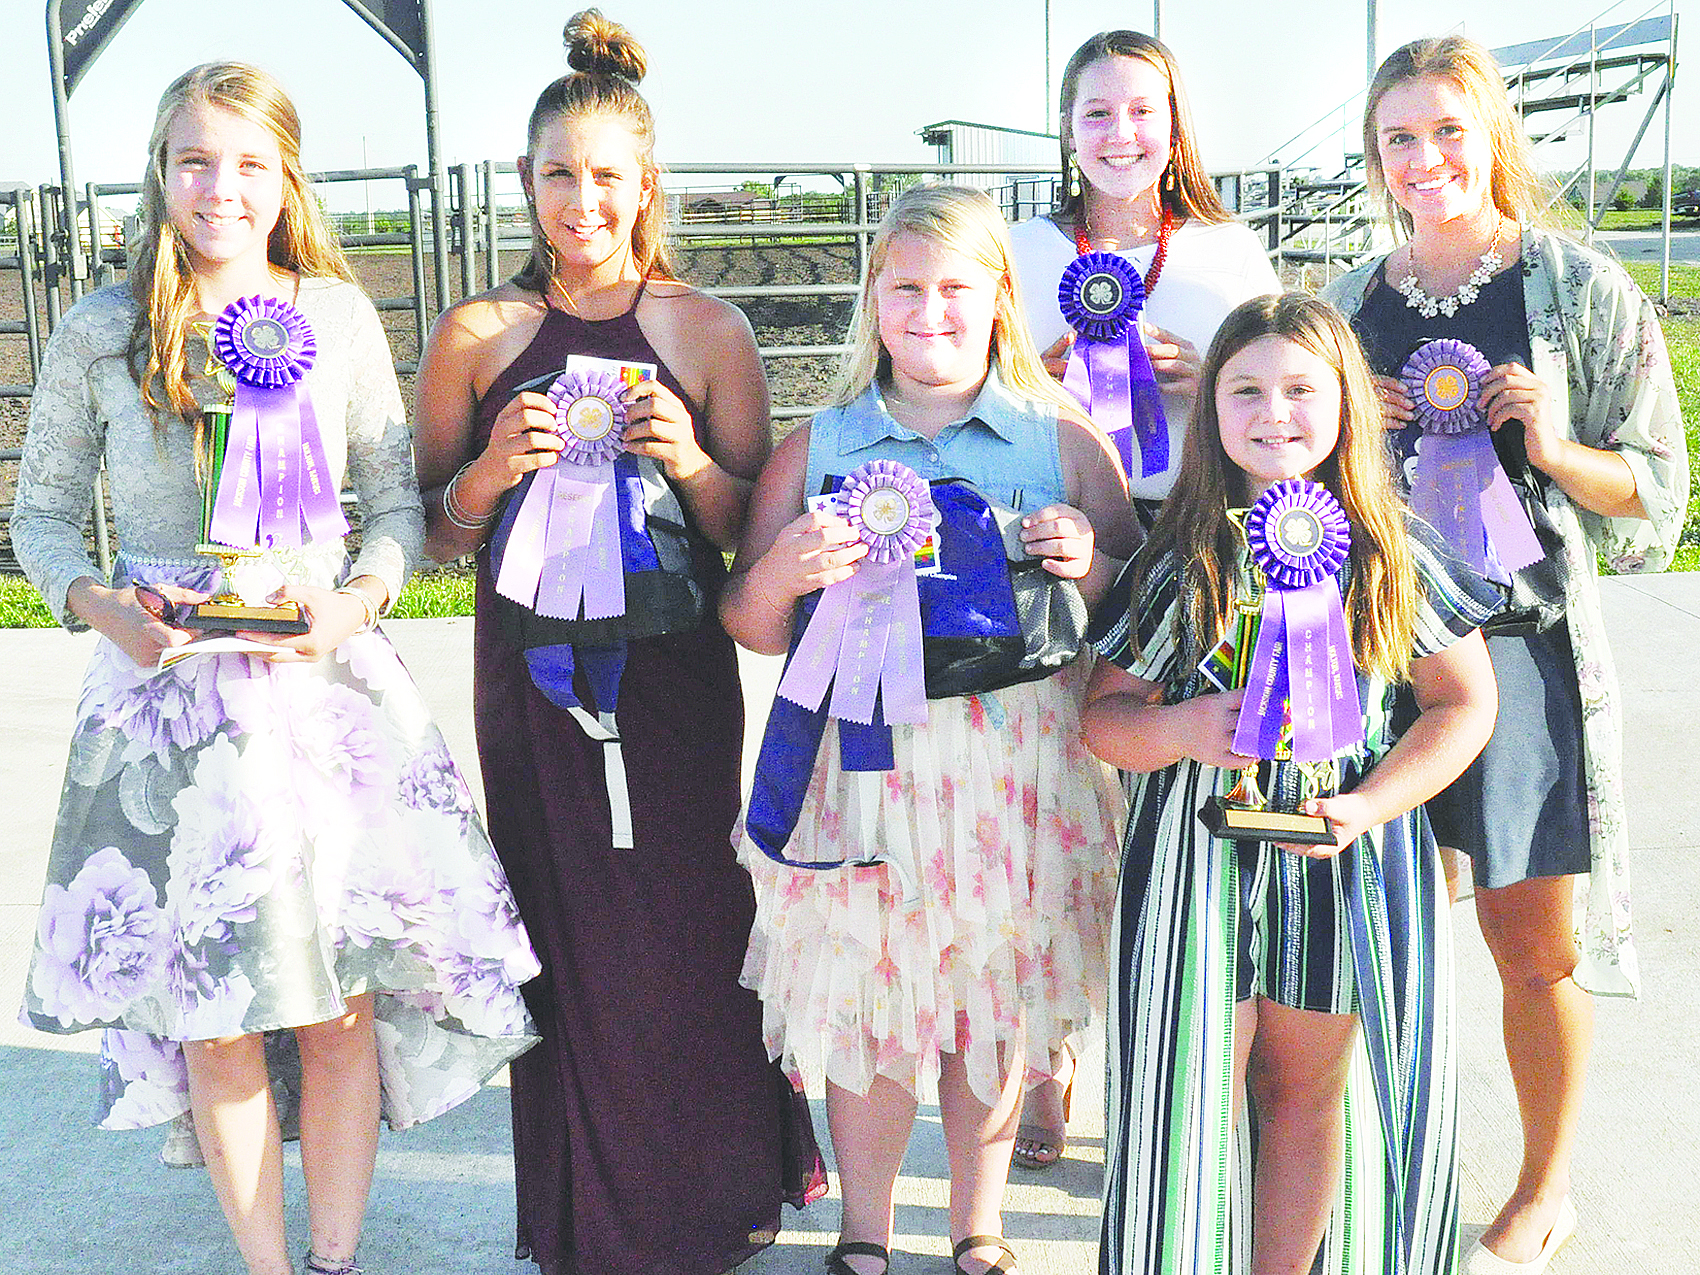 Girls clothing buymanship champions at this year's Jackson County Fair are shown above and include (front row, from left) Kennedy Tannahill (junior reserve champion), MaKenna Tyler (junior champion), (back row, from left) Shayla Rezac (intermediate champion), Savannah Cattrell (intermediate reserve champion), Karlie Albright (senior champion) and MaKenzie Kennedy (senior reserve champion). (Photo by Ali Holcomb)